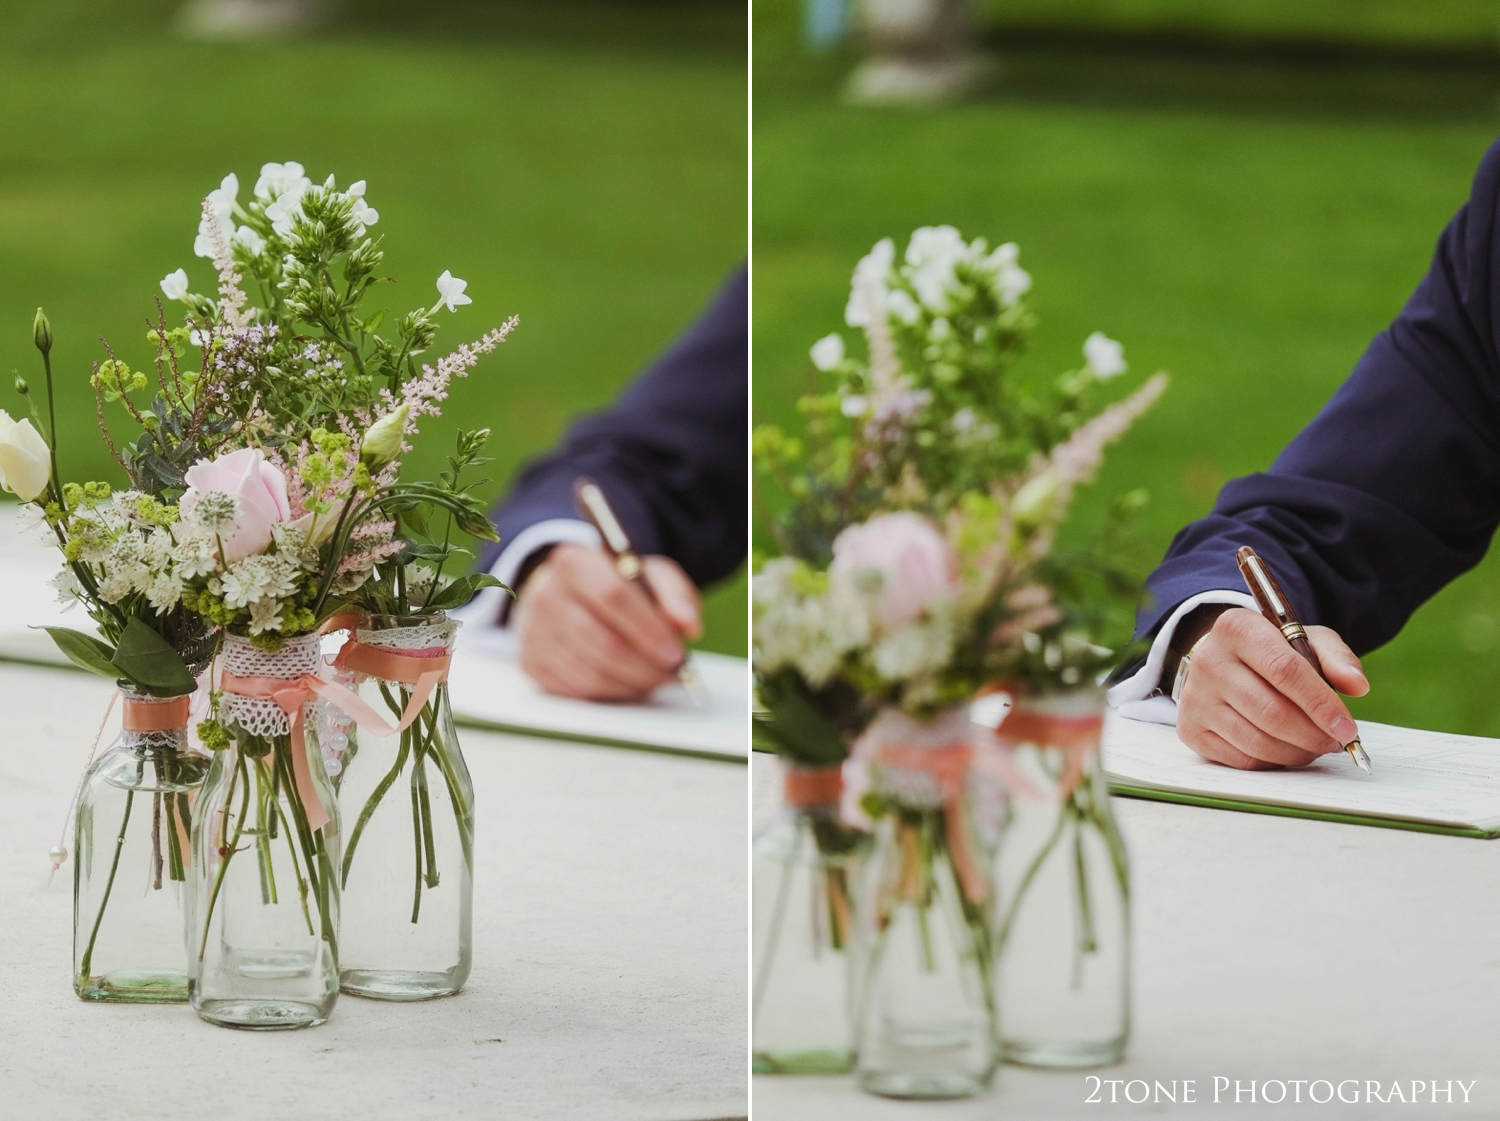 Bottles and jars instead of vases trimmed with ribbon and lace suited the handpicked look of the flowers.